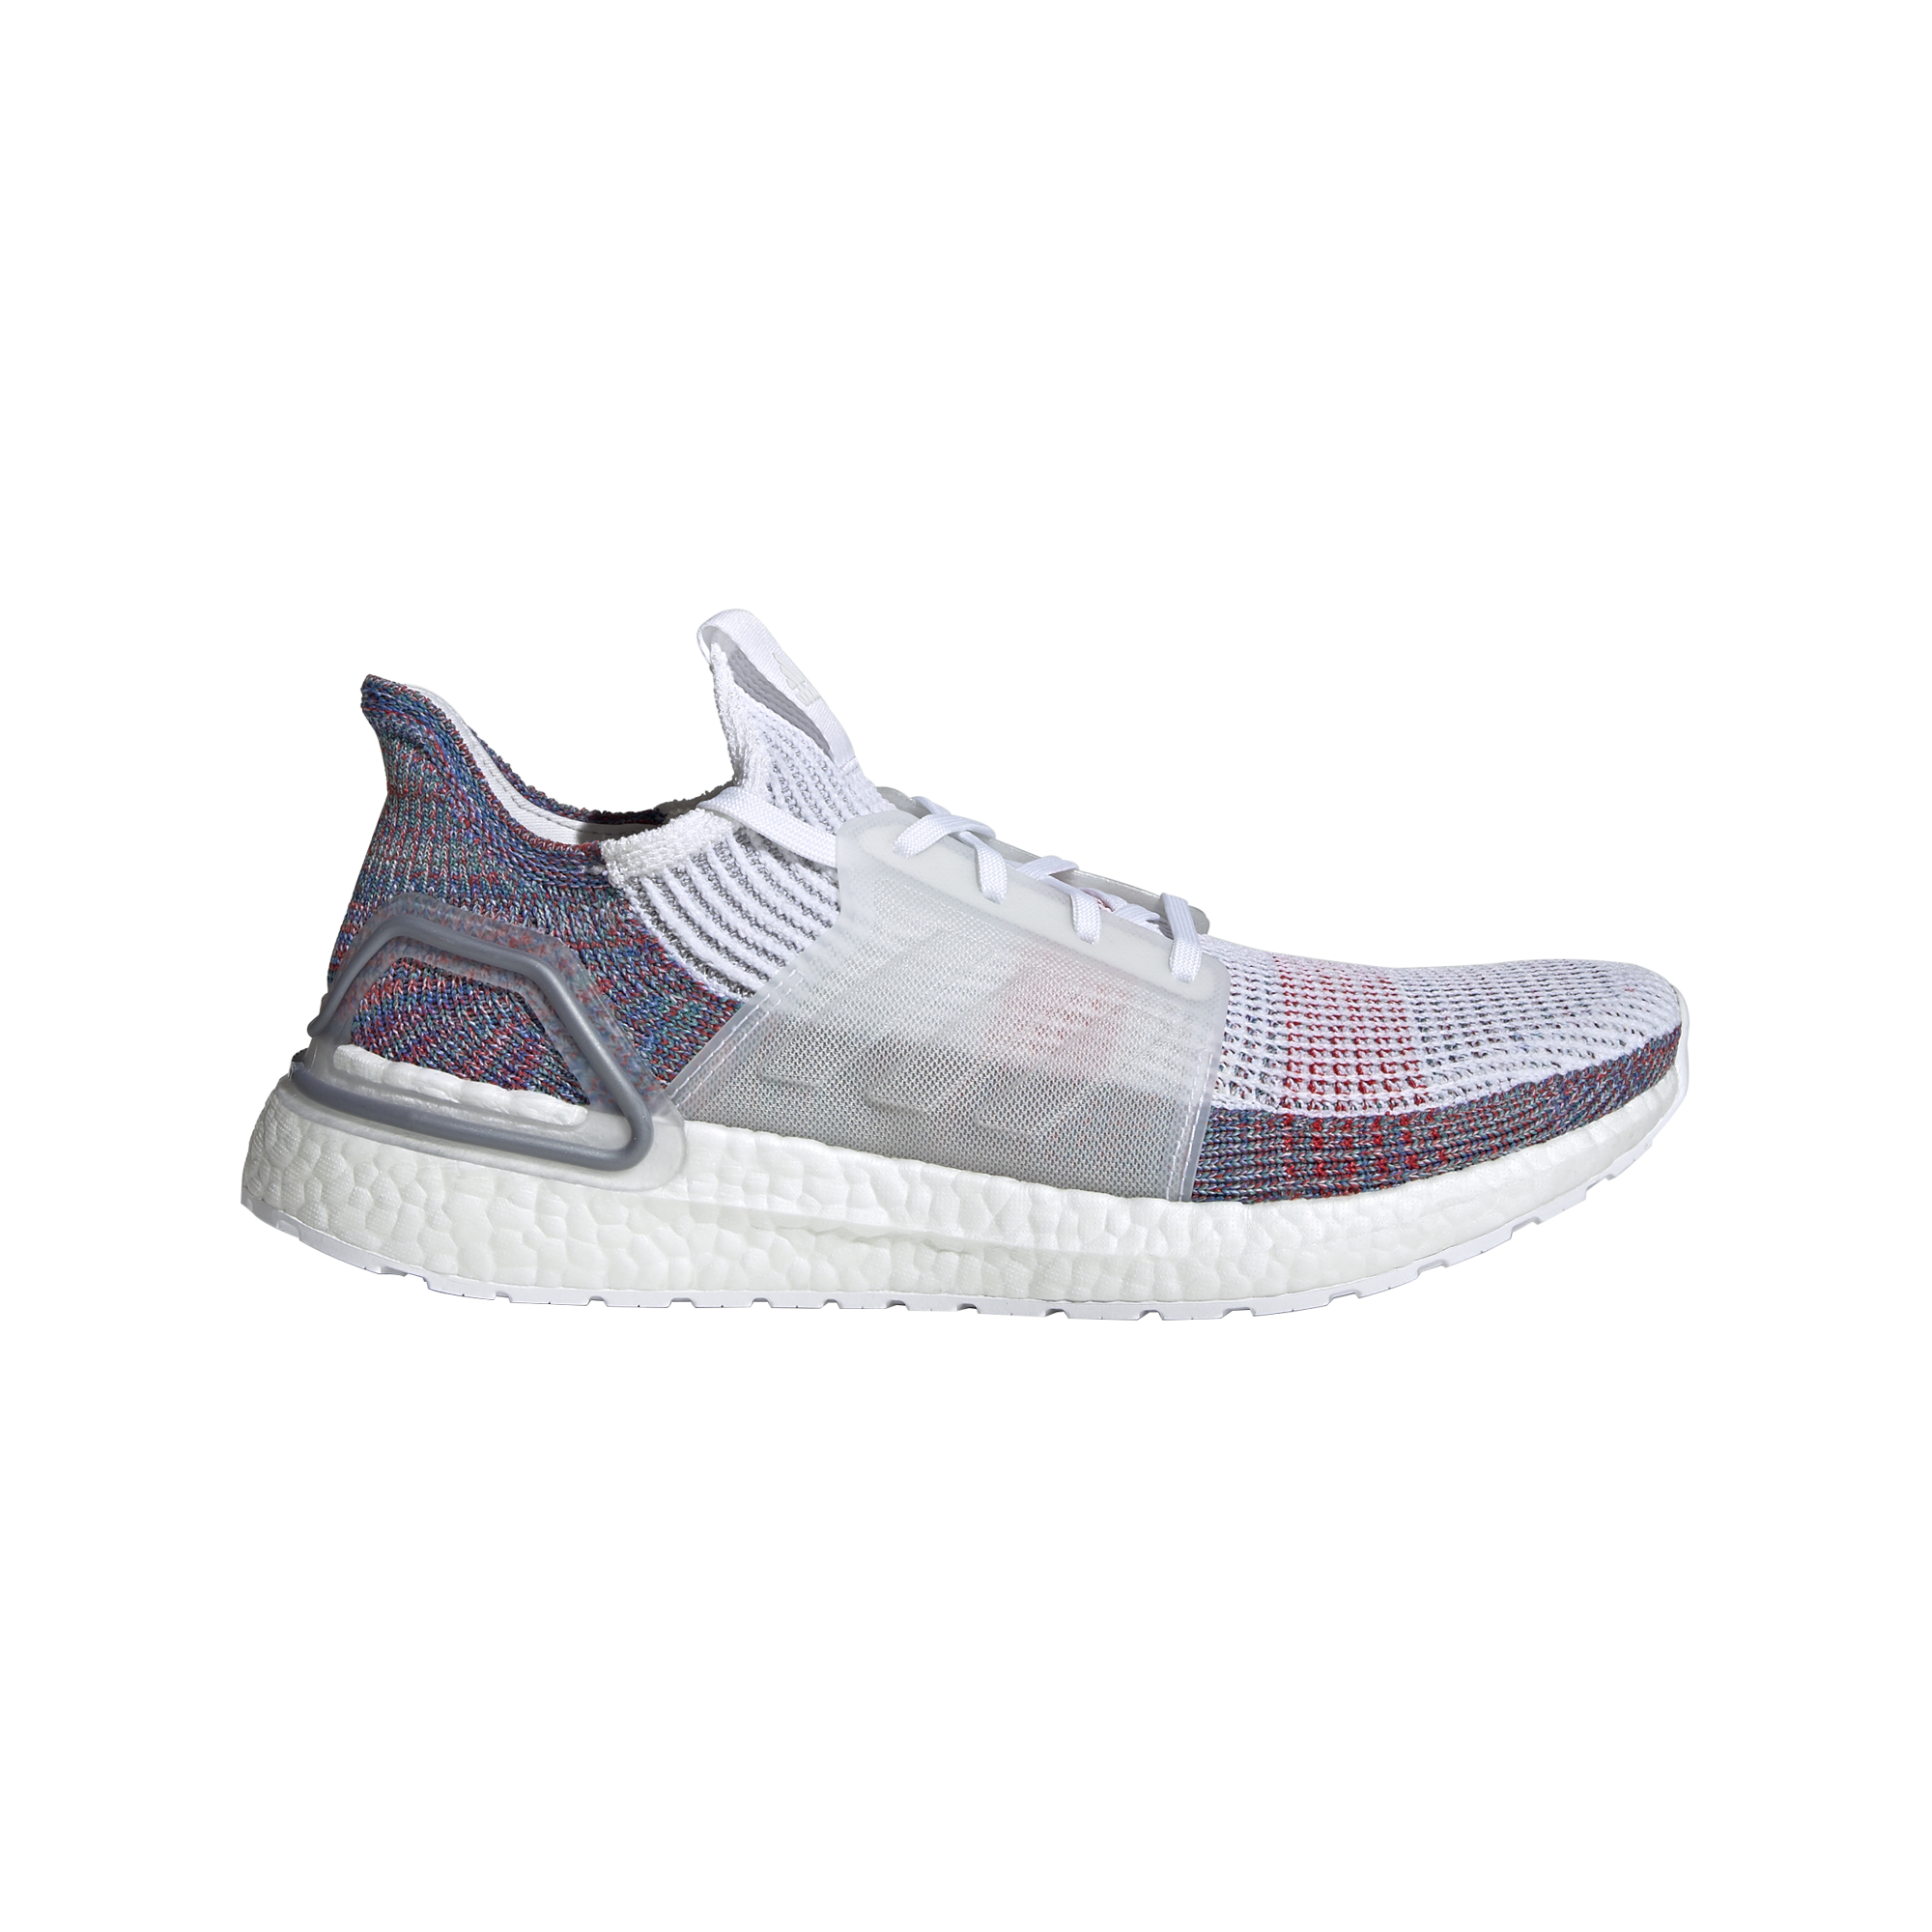 factory price c725c 4a06b adidas UltraBOOST 19 Herre   LØBEREN